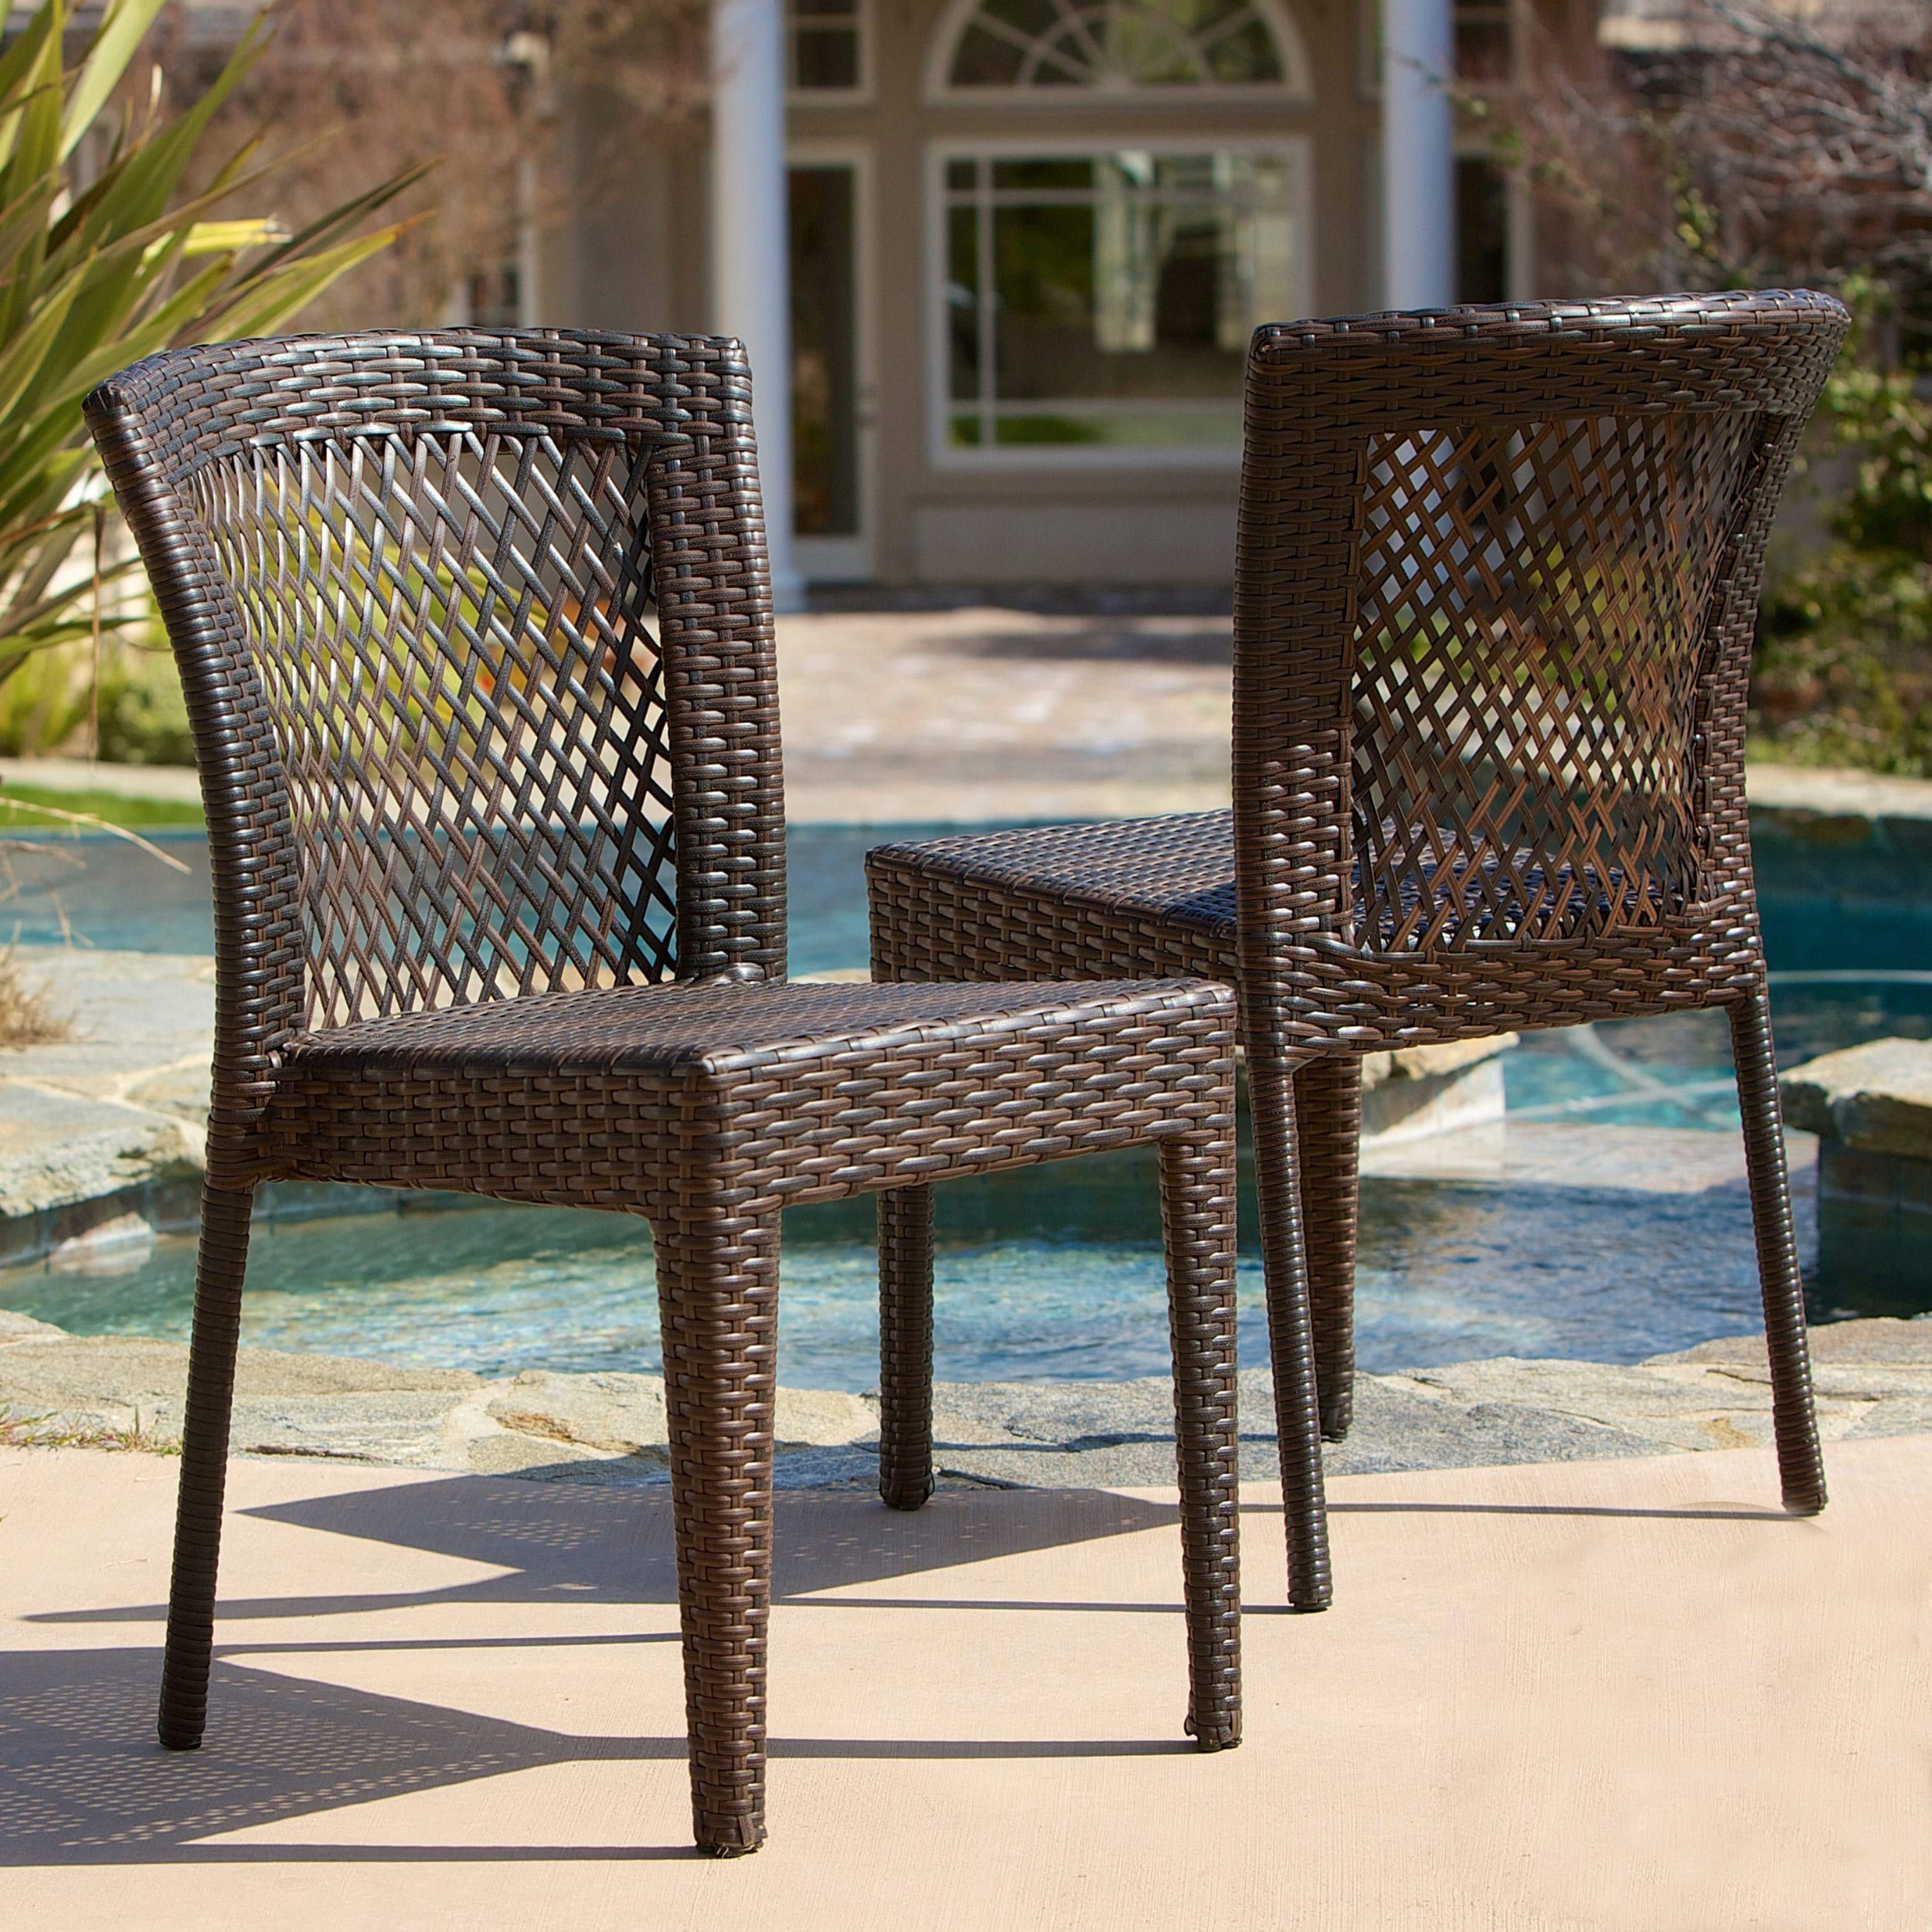 Dusk Outdoor Wicker Chair Set By Christopher Knight Home Grey Set Of 4 Gray Iron Patio Dining Chairs Wicker Dining Chairs Outdoor Wicker Chairs Wicker Patio